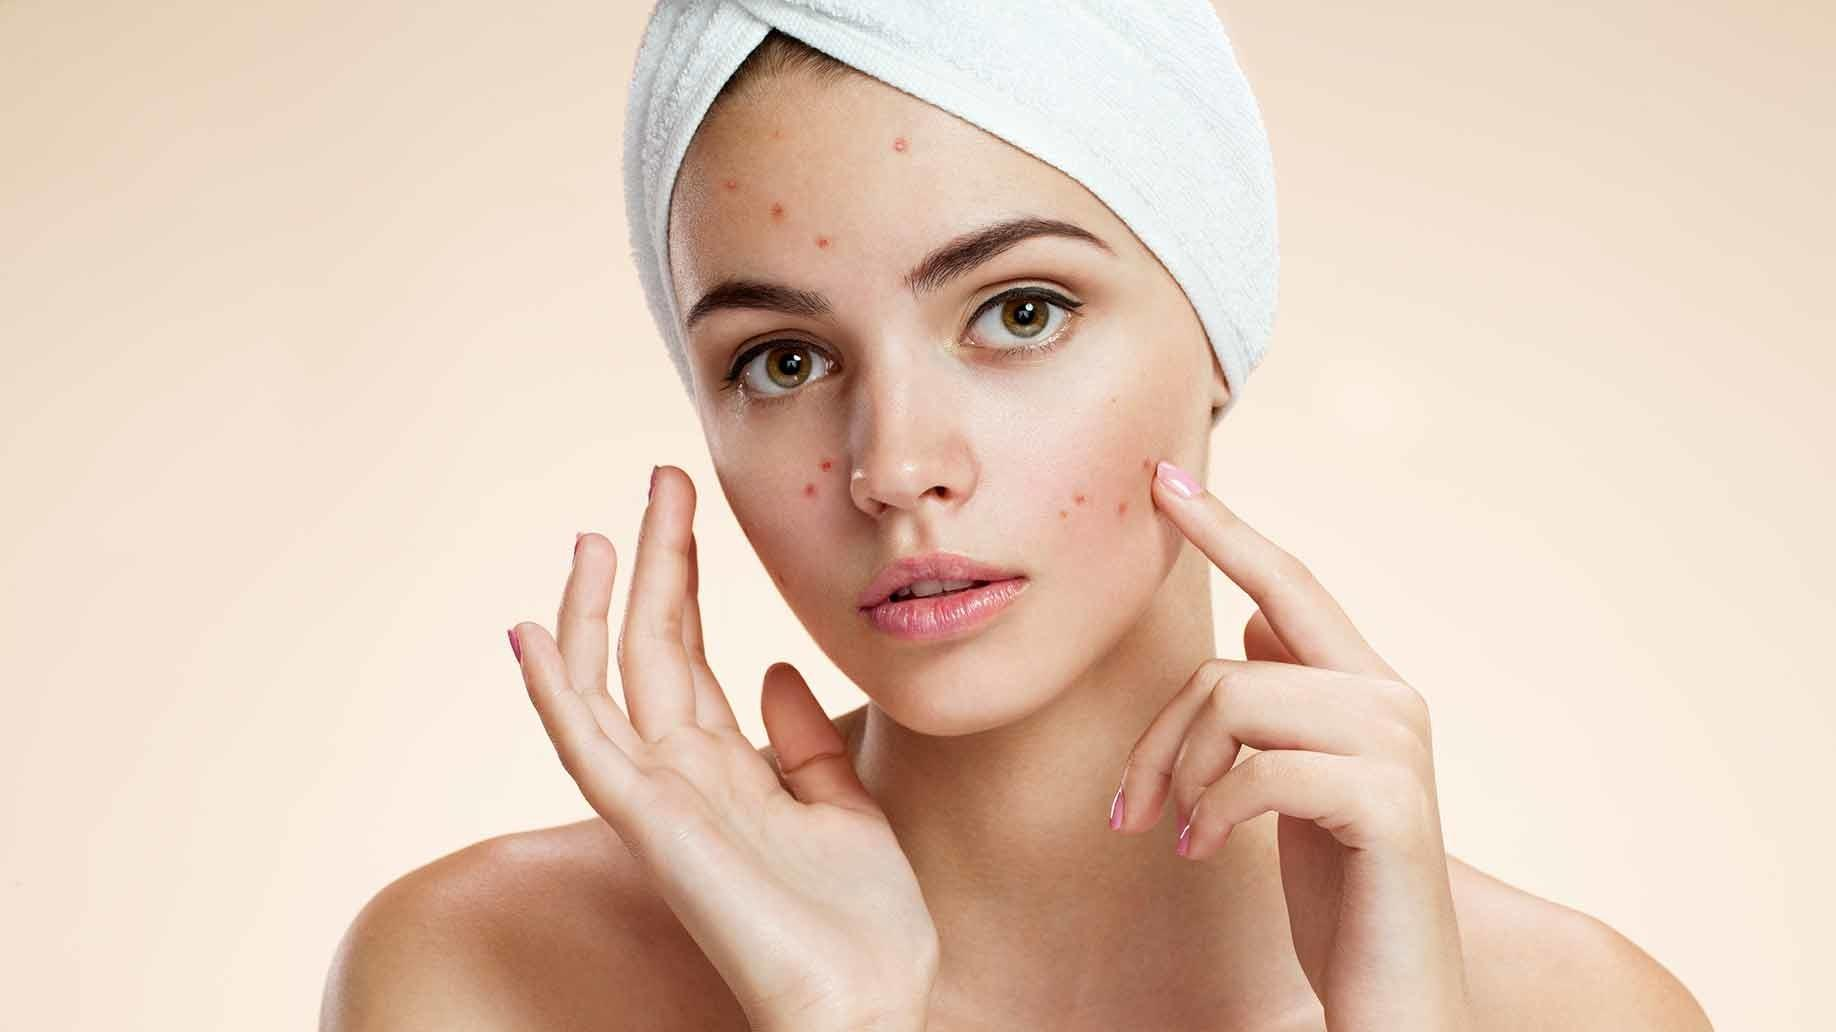 Best Homemade Diy Face Masks Acne Recipes